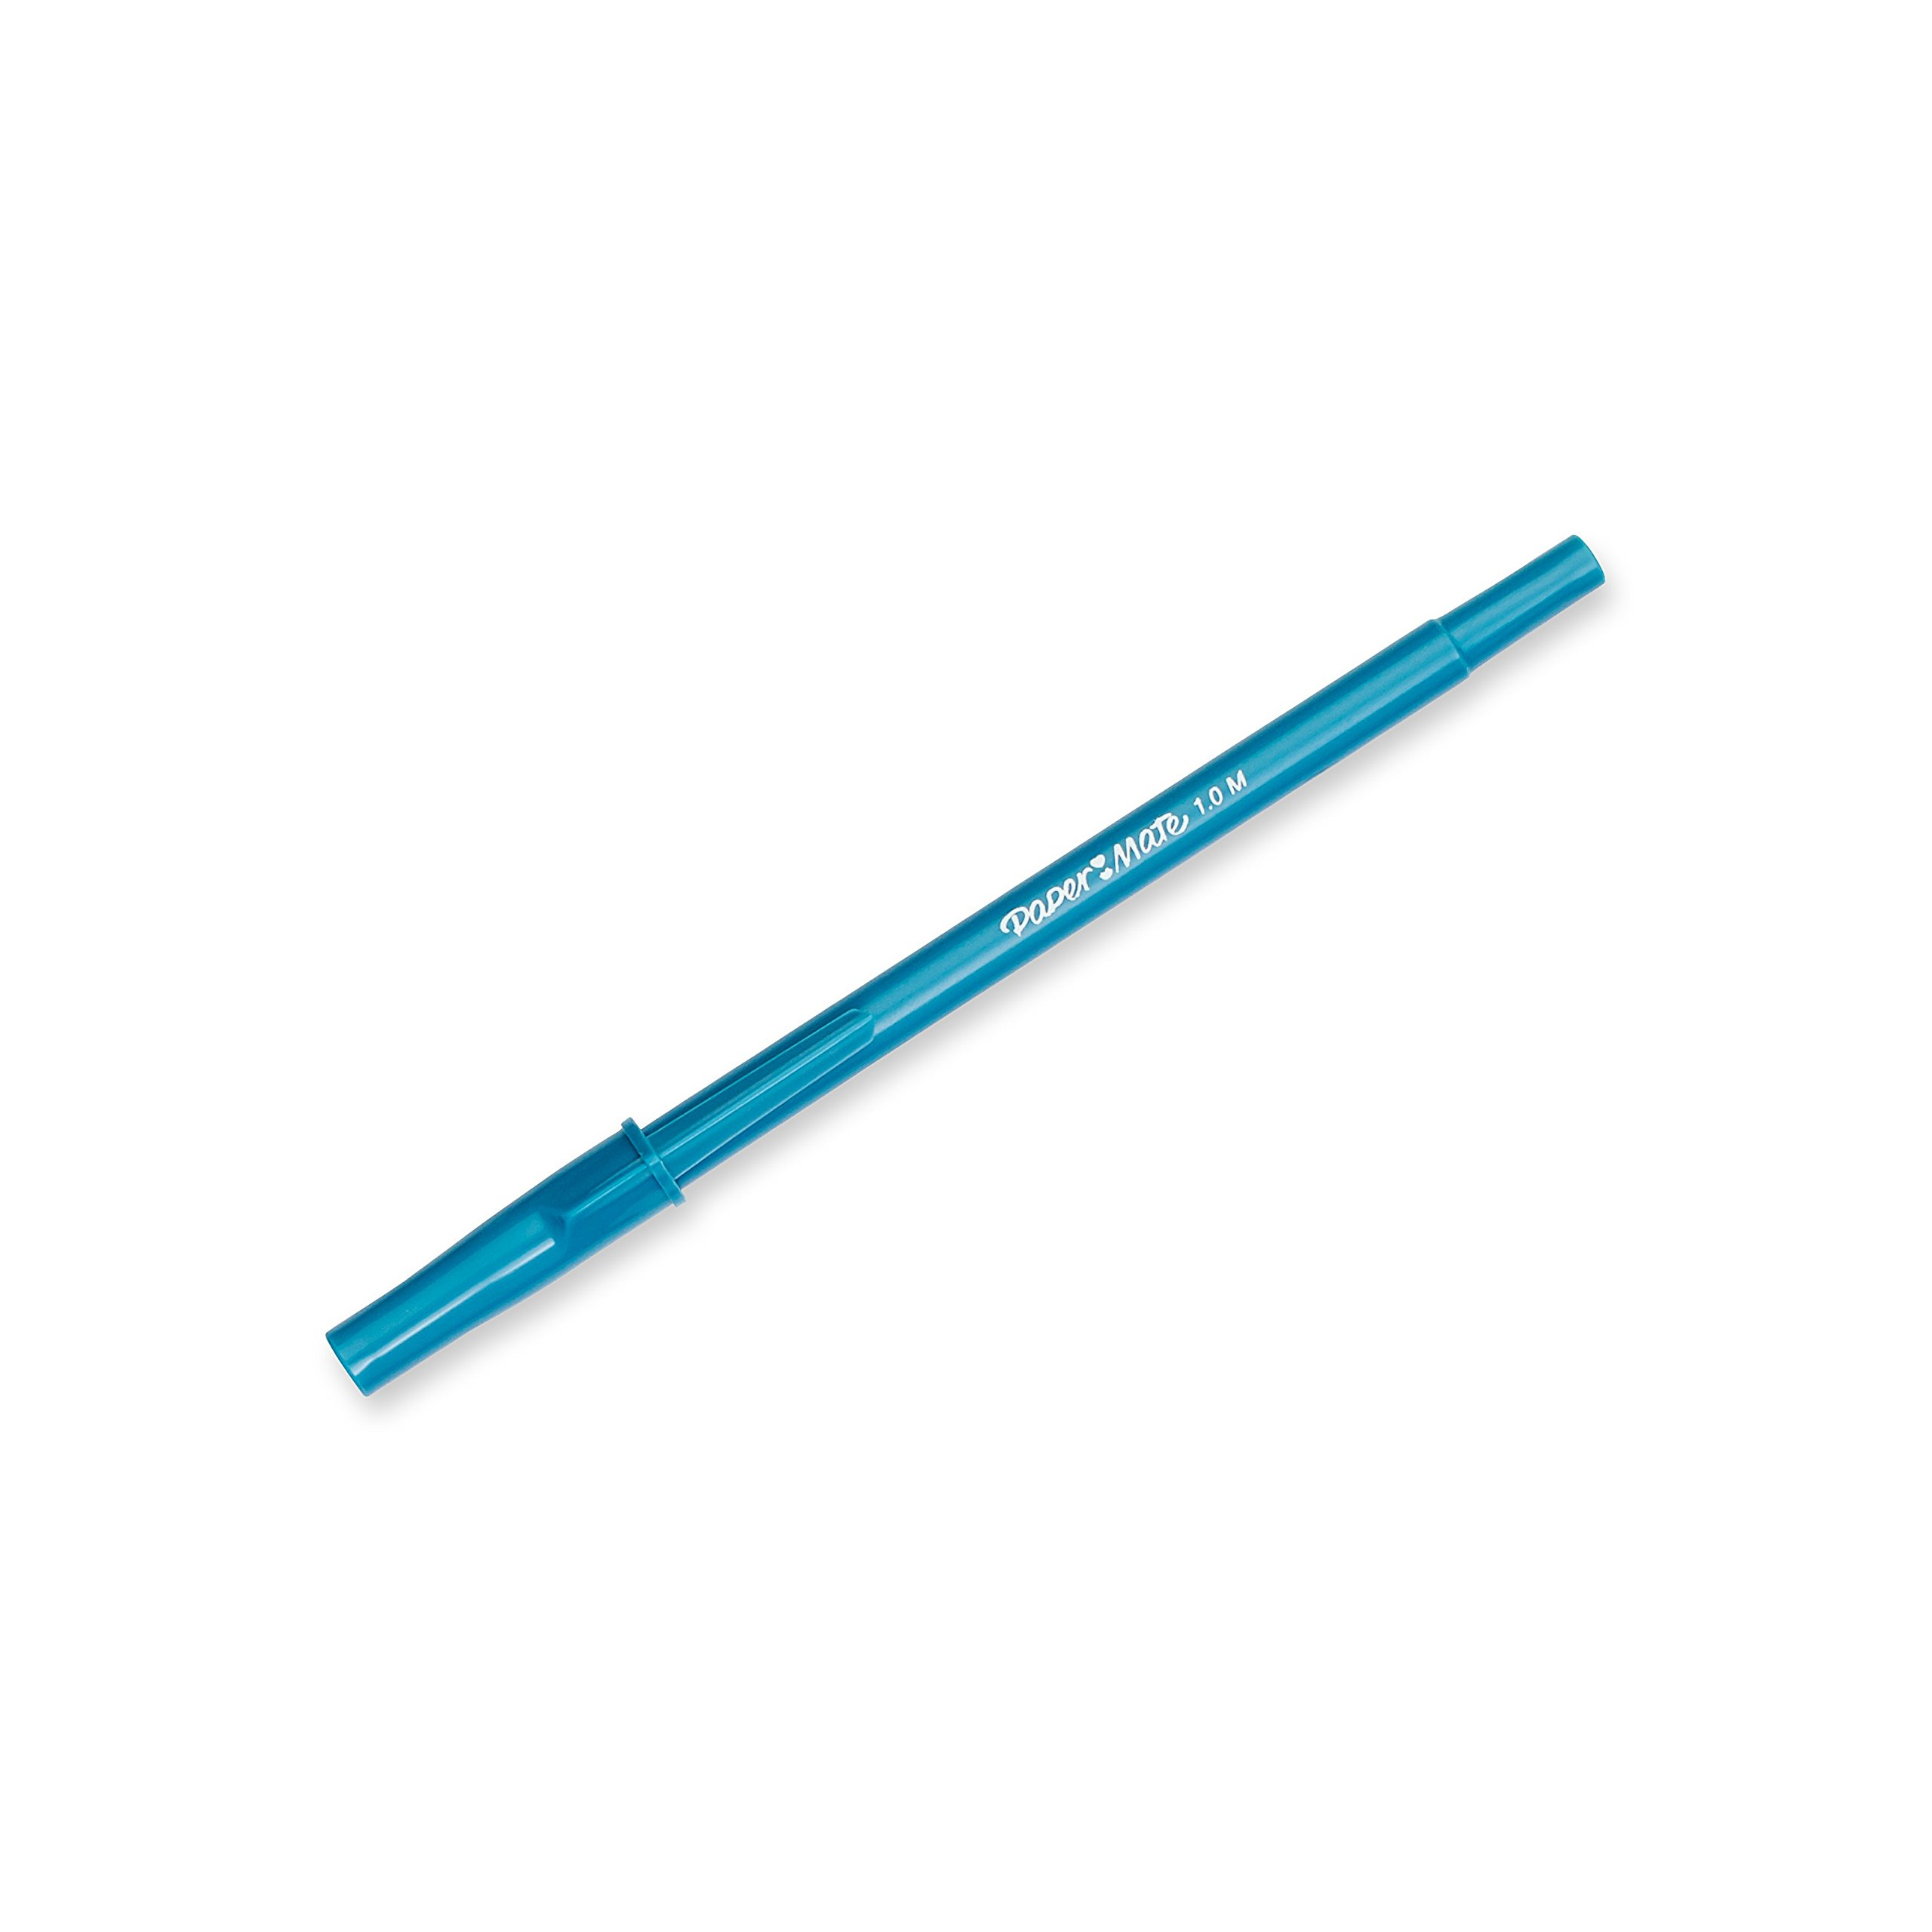 Paper Mate Write Bros Ballpoint Pens, Medium Point (1.0 mm), Blue, 60 Count by Paper Mate (Image #2)